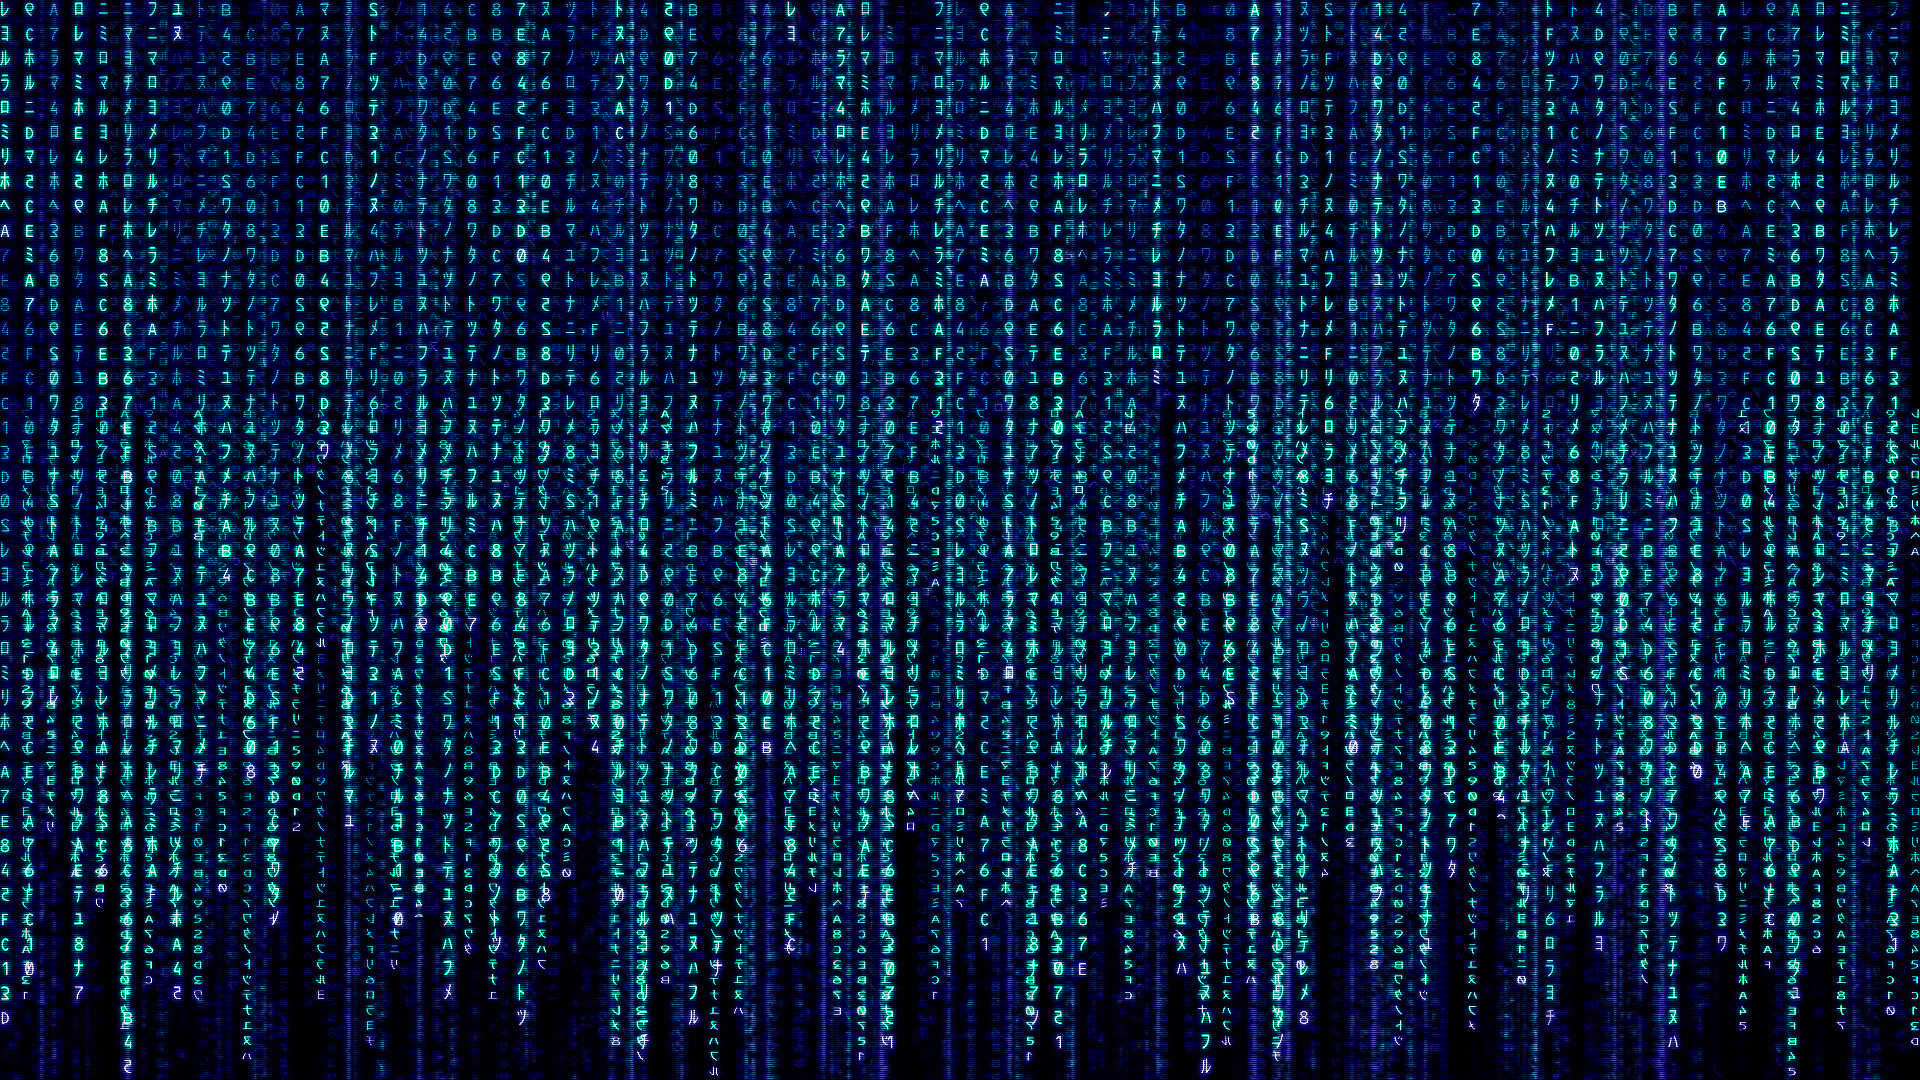 Blue Matrix Code Wallpapers Blue Matrix Code Myspace Backgrounds 1920x1080